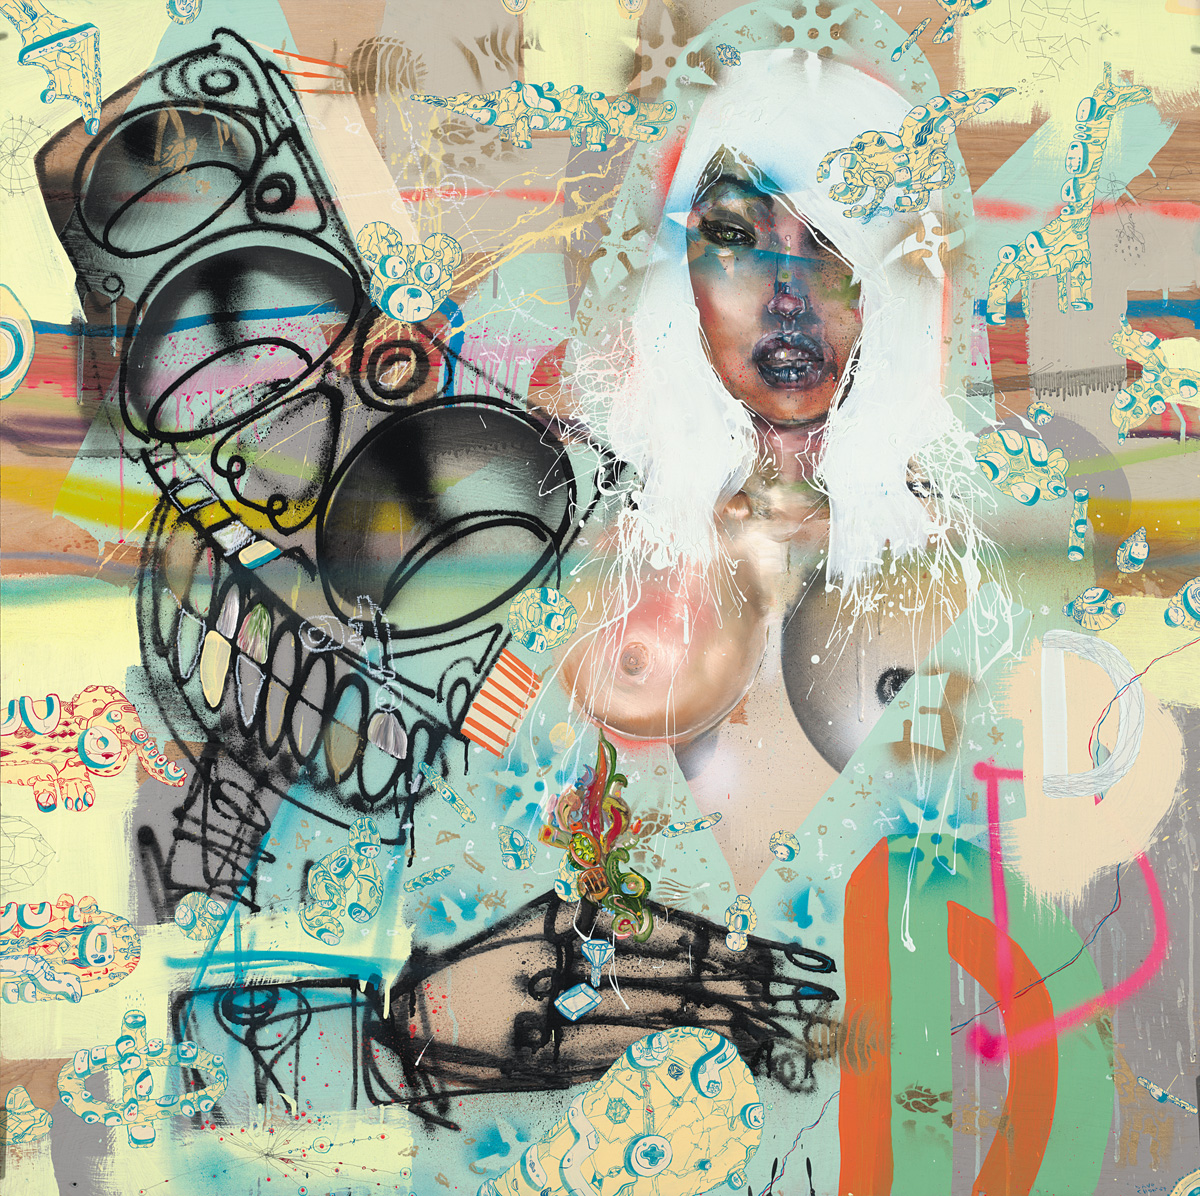 David-Choe-Styrofoam-Ark-and-Stereo-Confessions